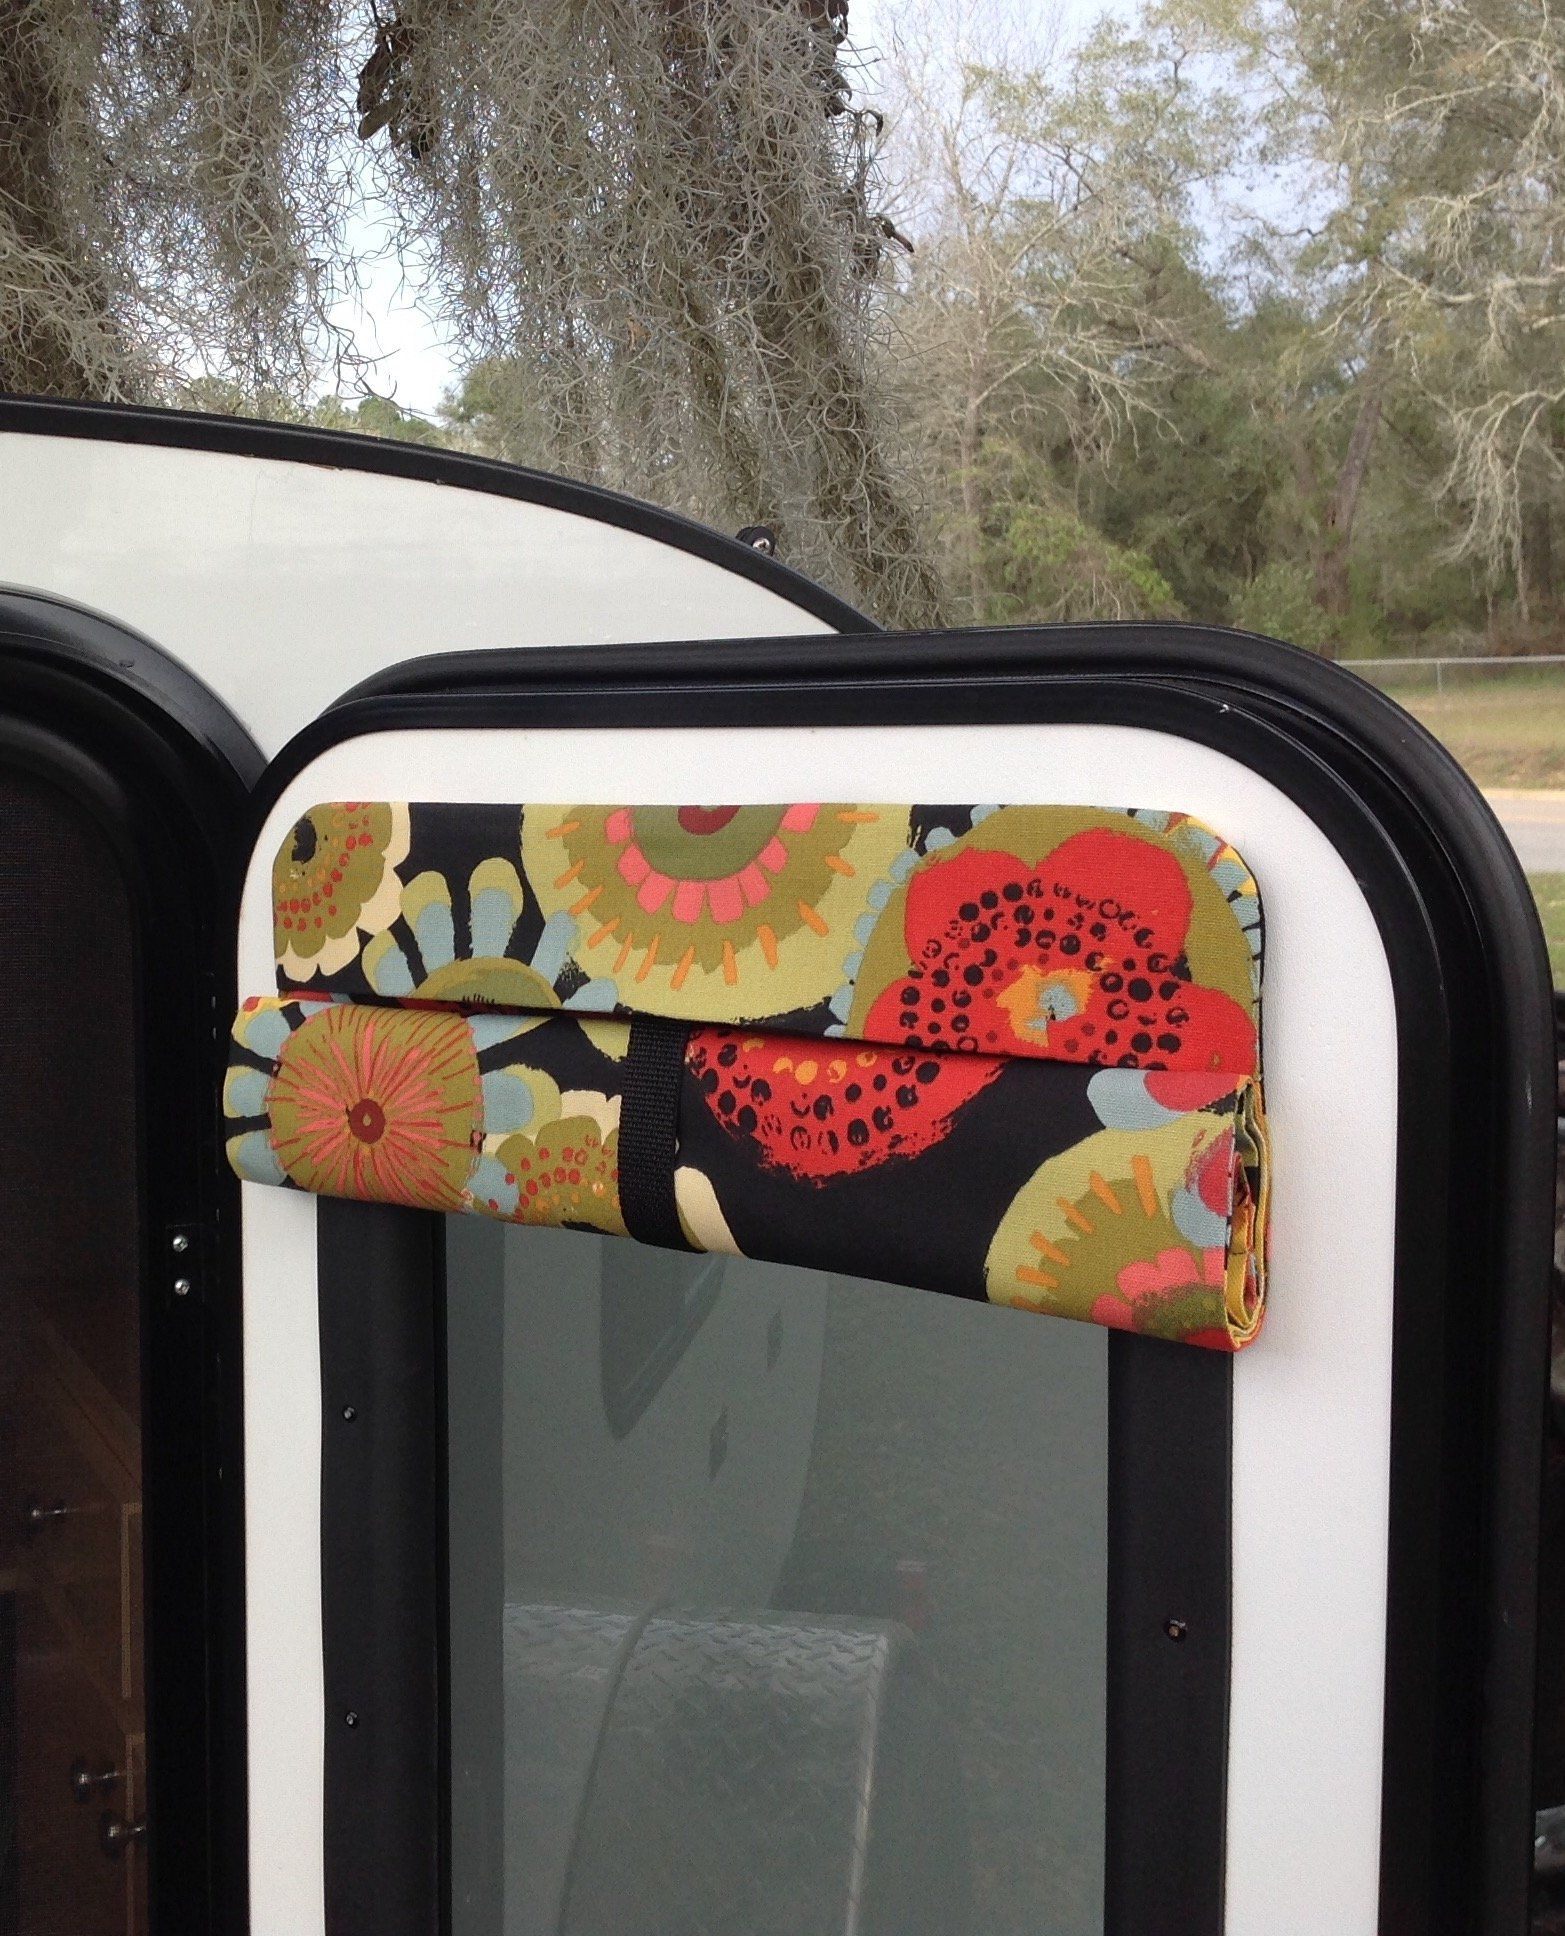 Insulated camper shade for windows or door windows up to